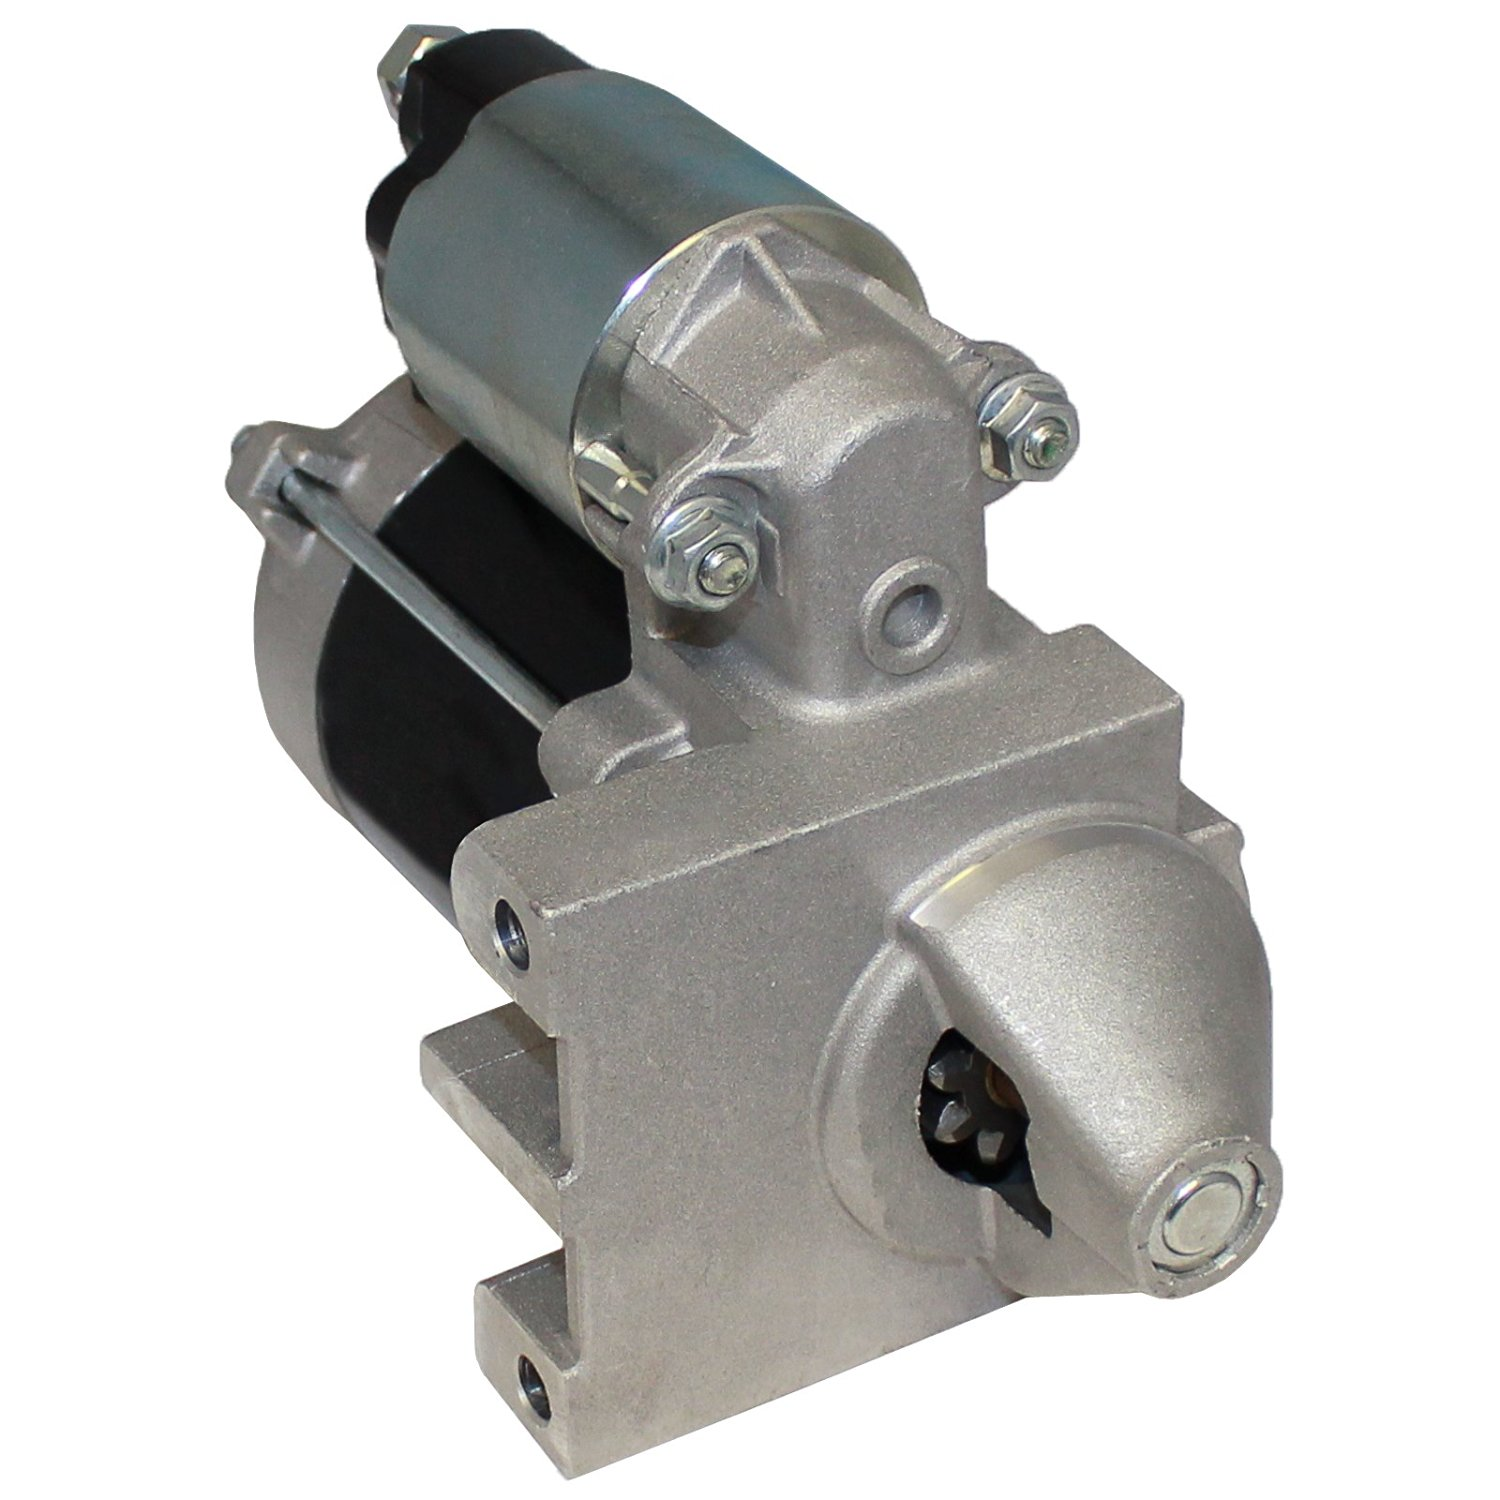 Caltric STARTER Fits John Deere Lawn Tractor 130 160